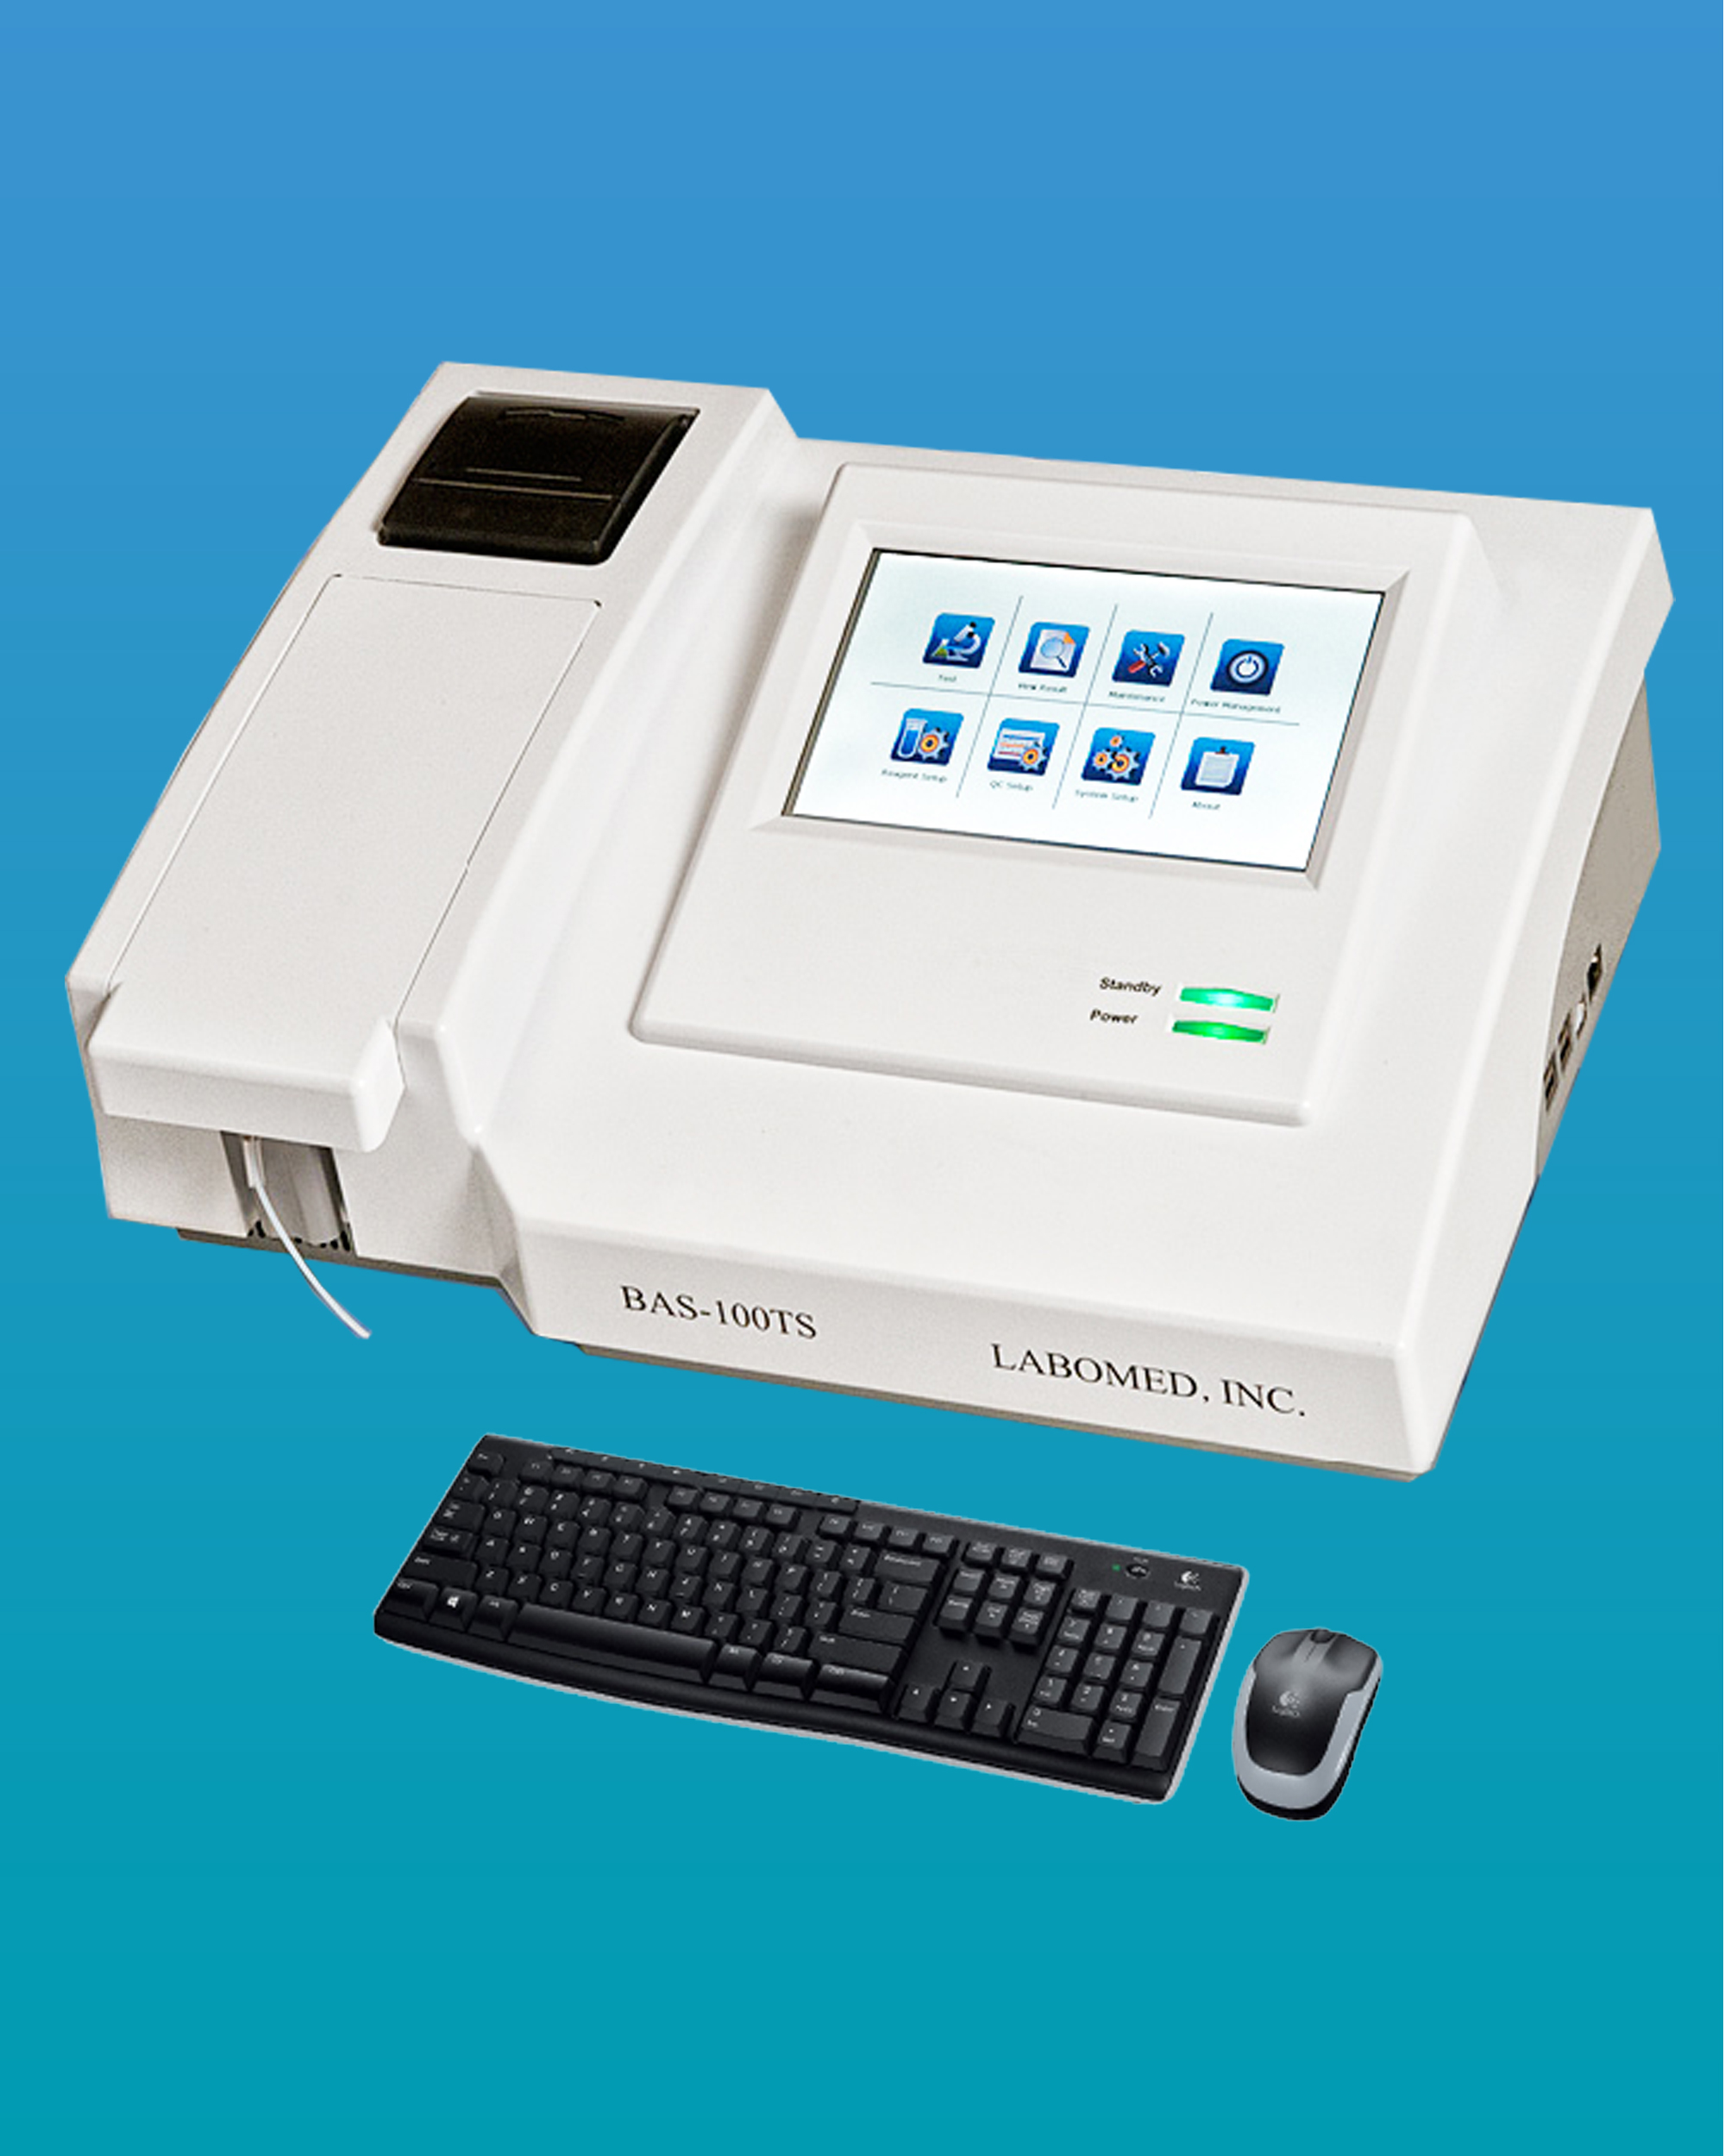 [BAS-100TS] Semi-Automatic Clinical Chemistry Analyzer